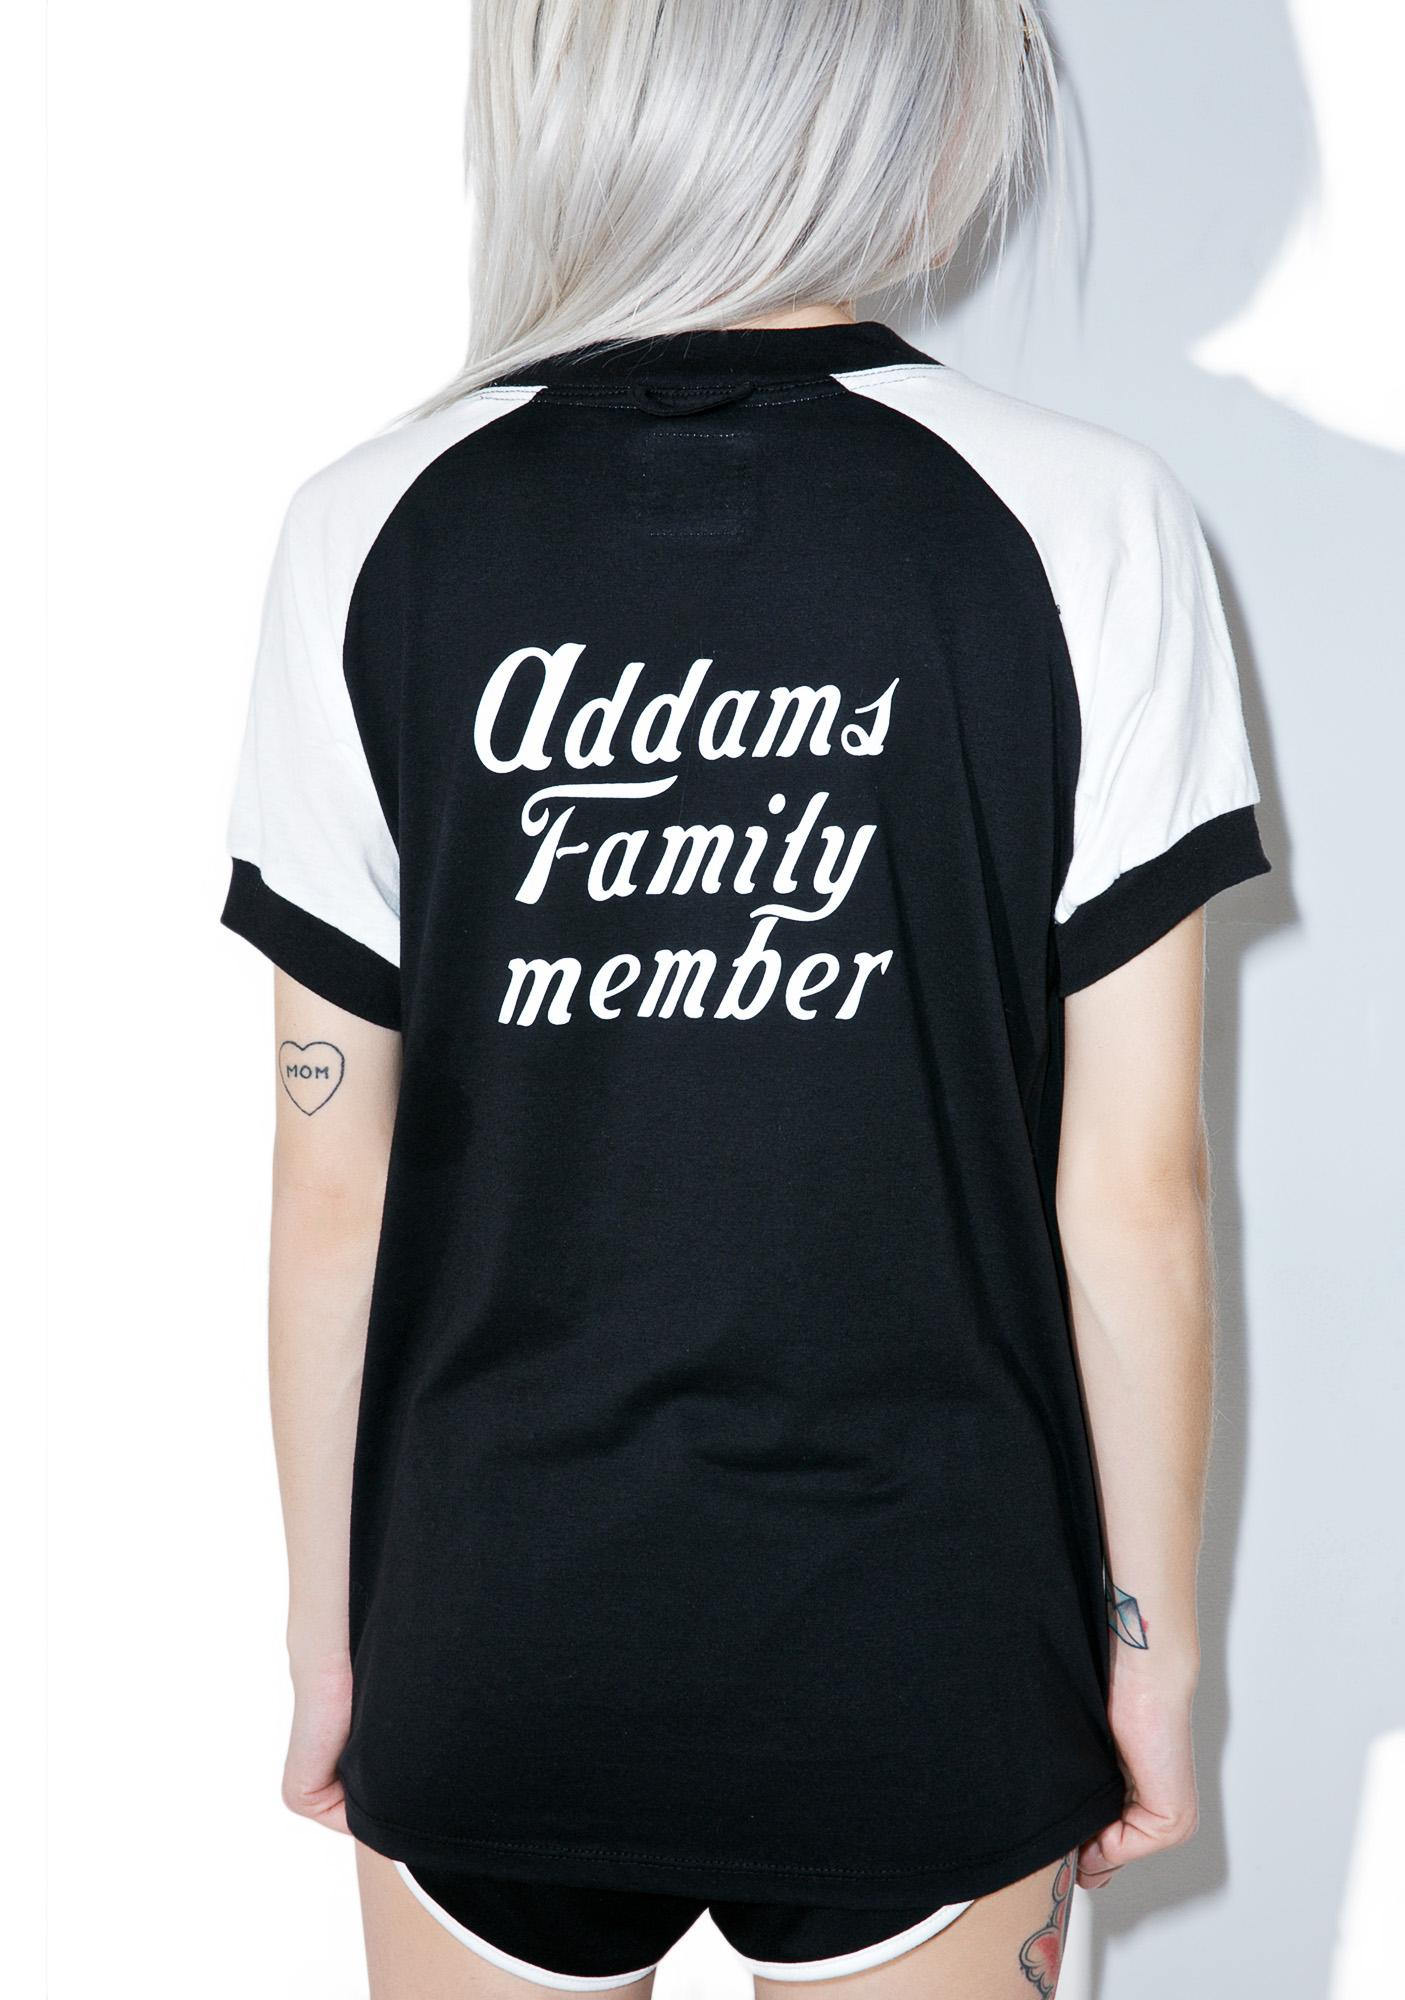 Camp Collection X Dolls Kill Addams Family Tee